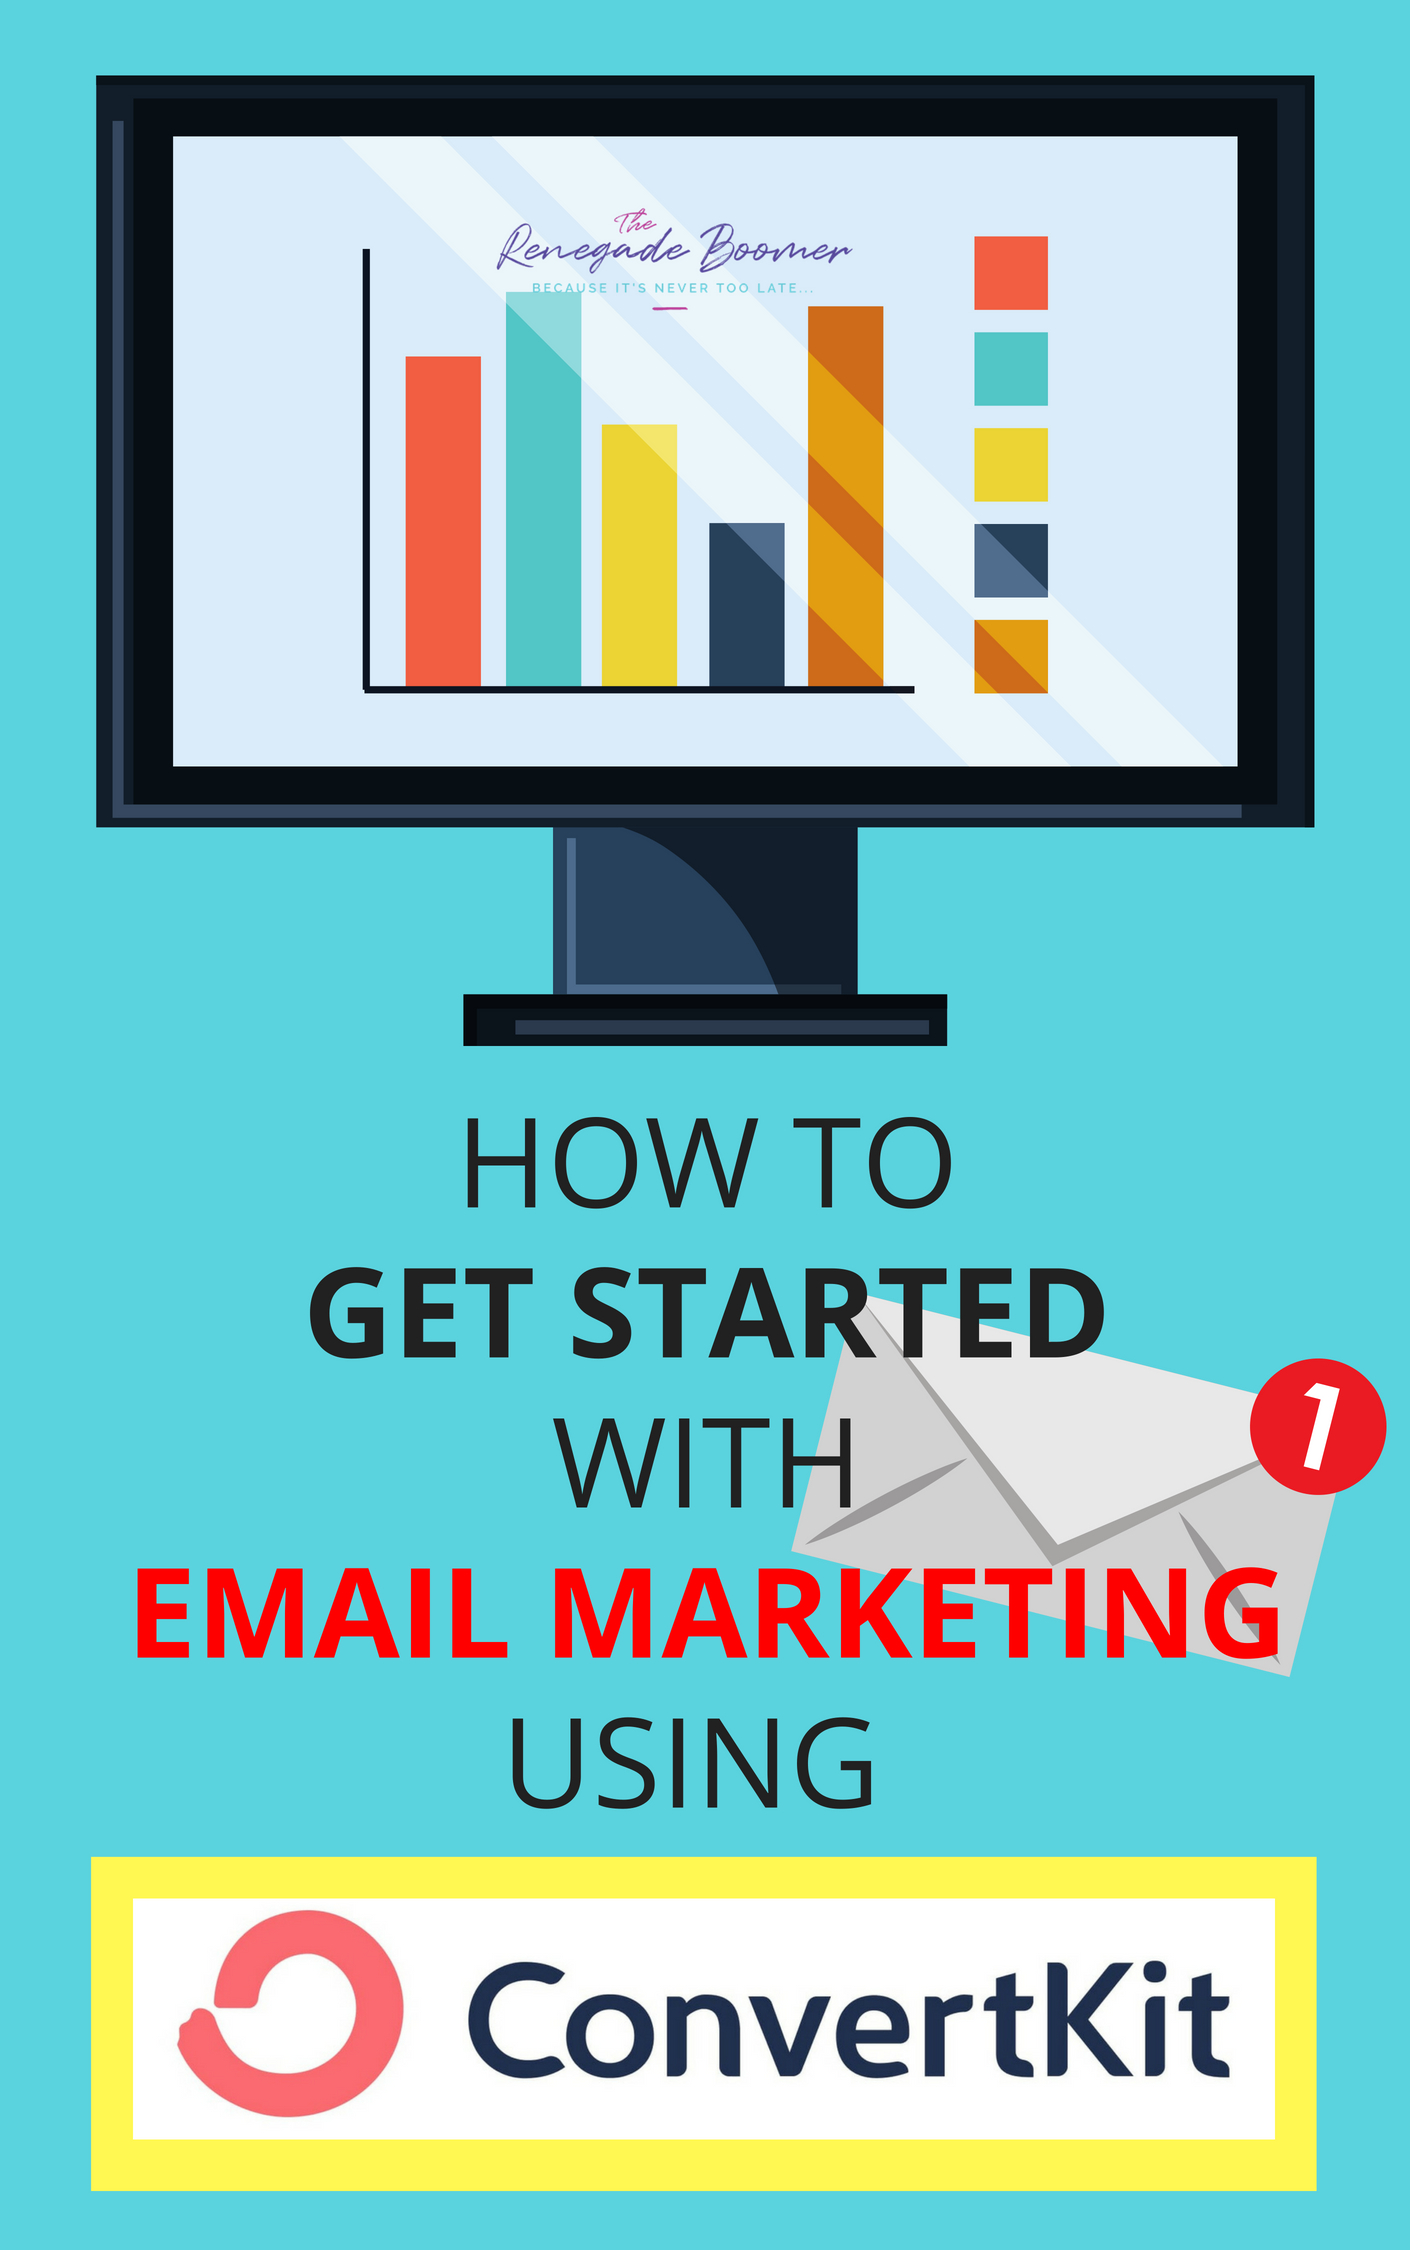 Copy of How to Get Started with Email Marketing Using ConvertKit A Step by Step Guide with Screenshots! _ www.TheRenegadeBoomer.com